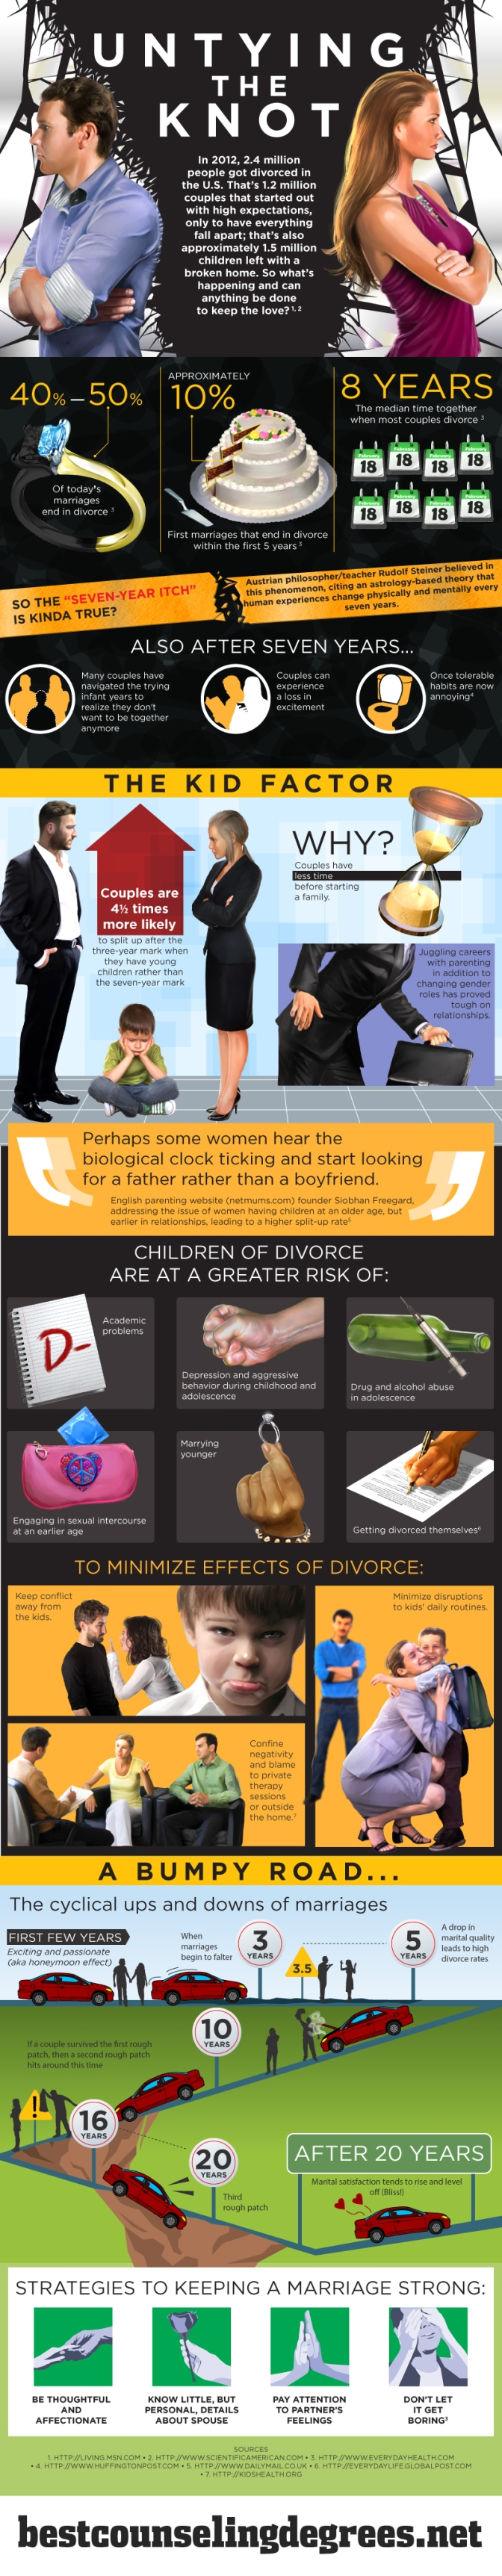 Untying The Knot! Divorce Facts!